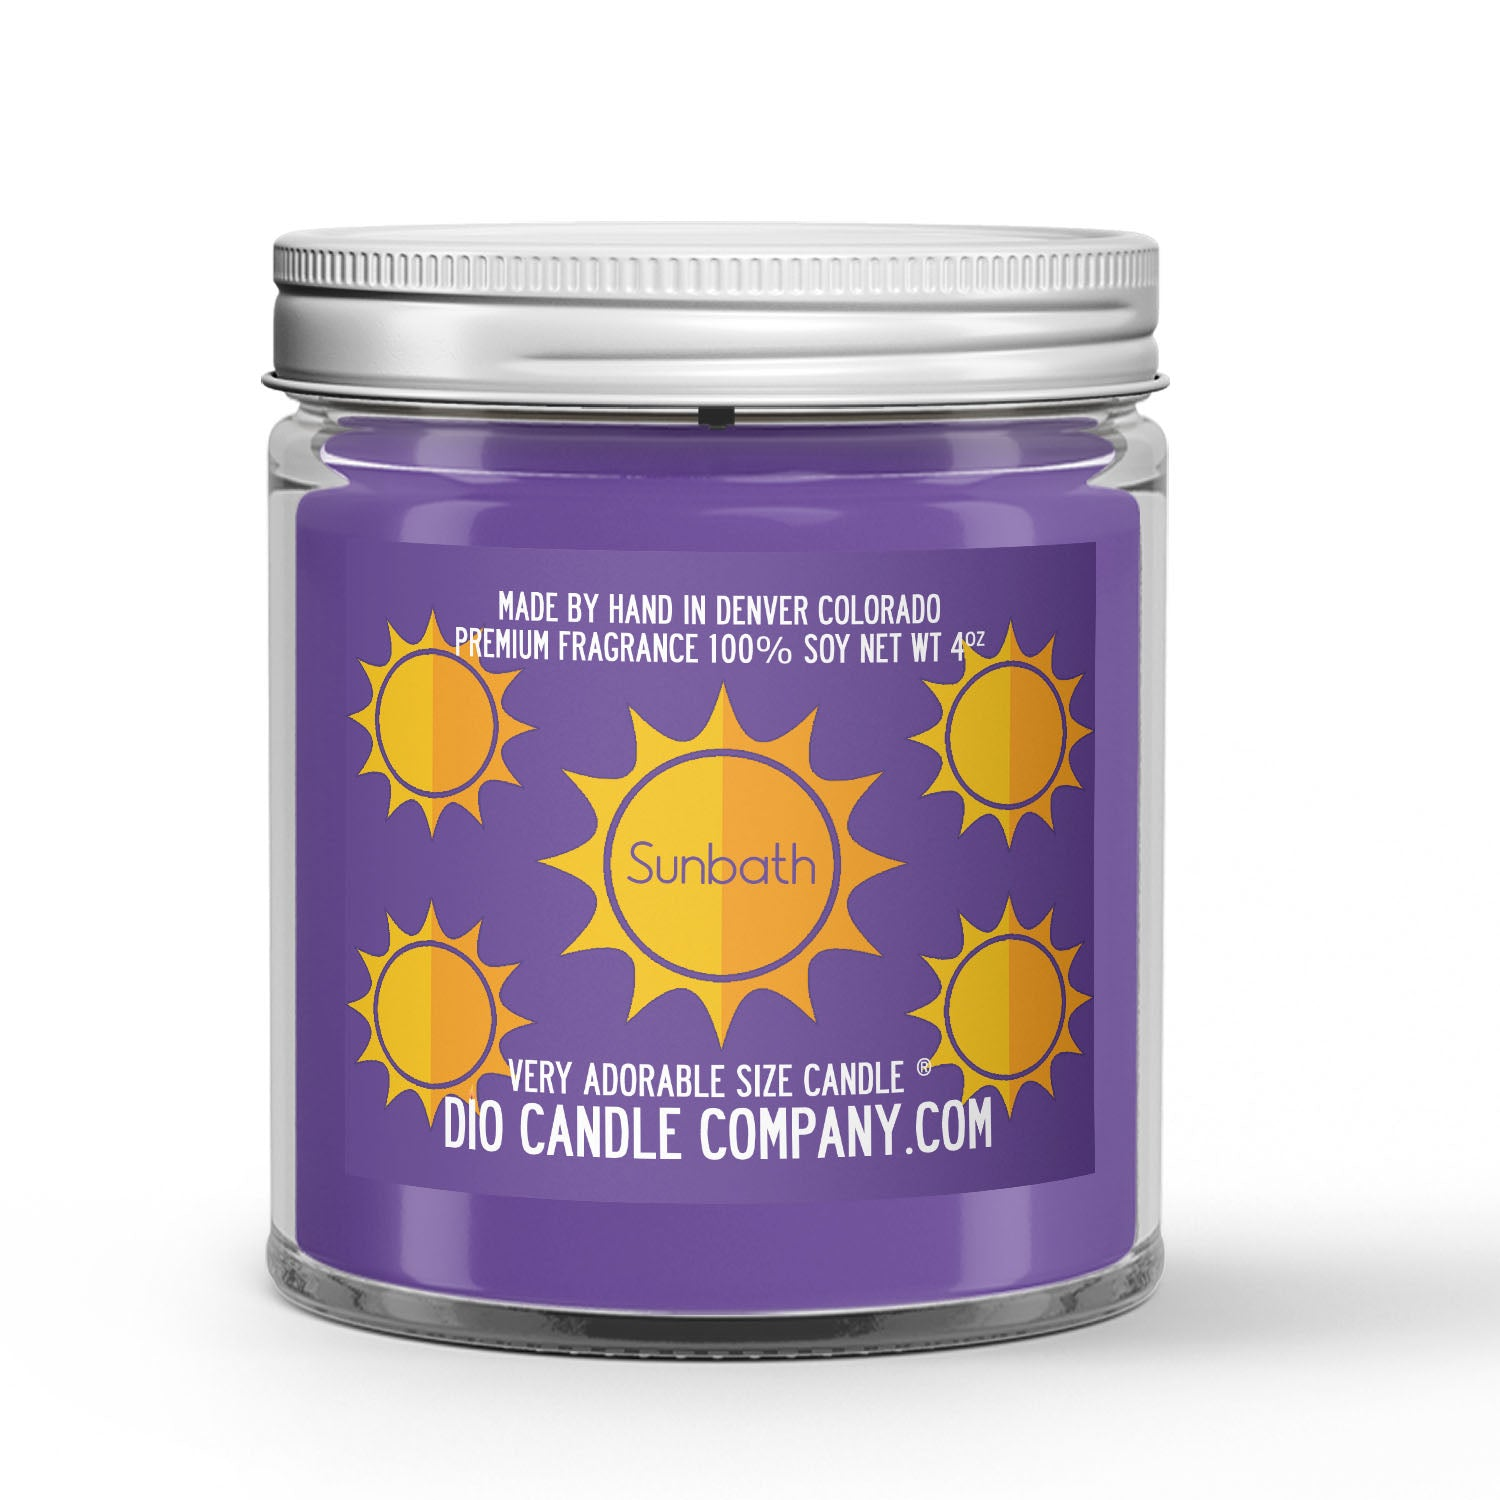 Sunbath Candles and Wax Melts